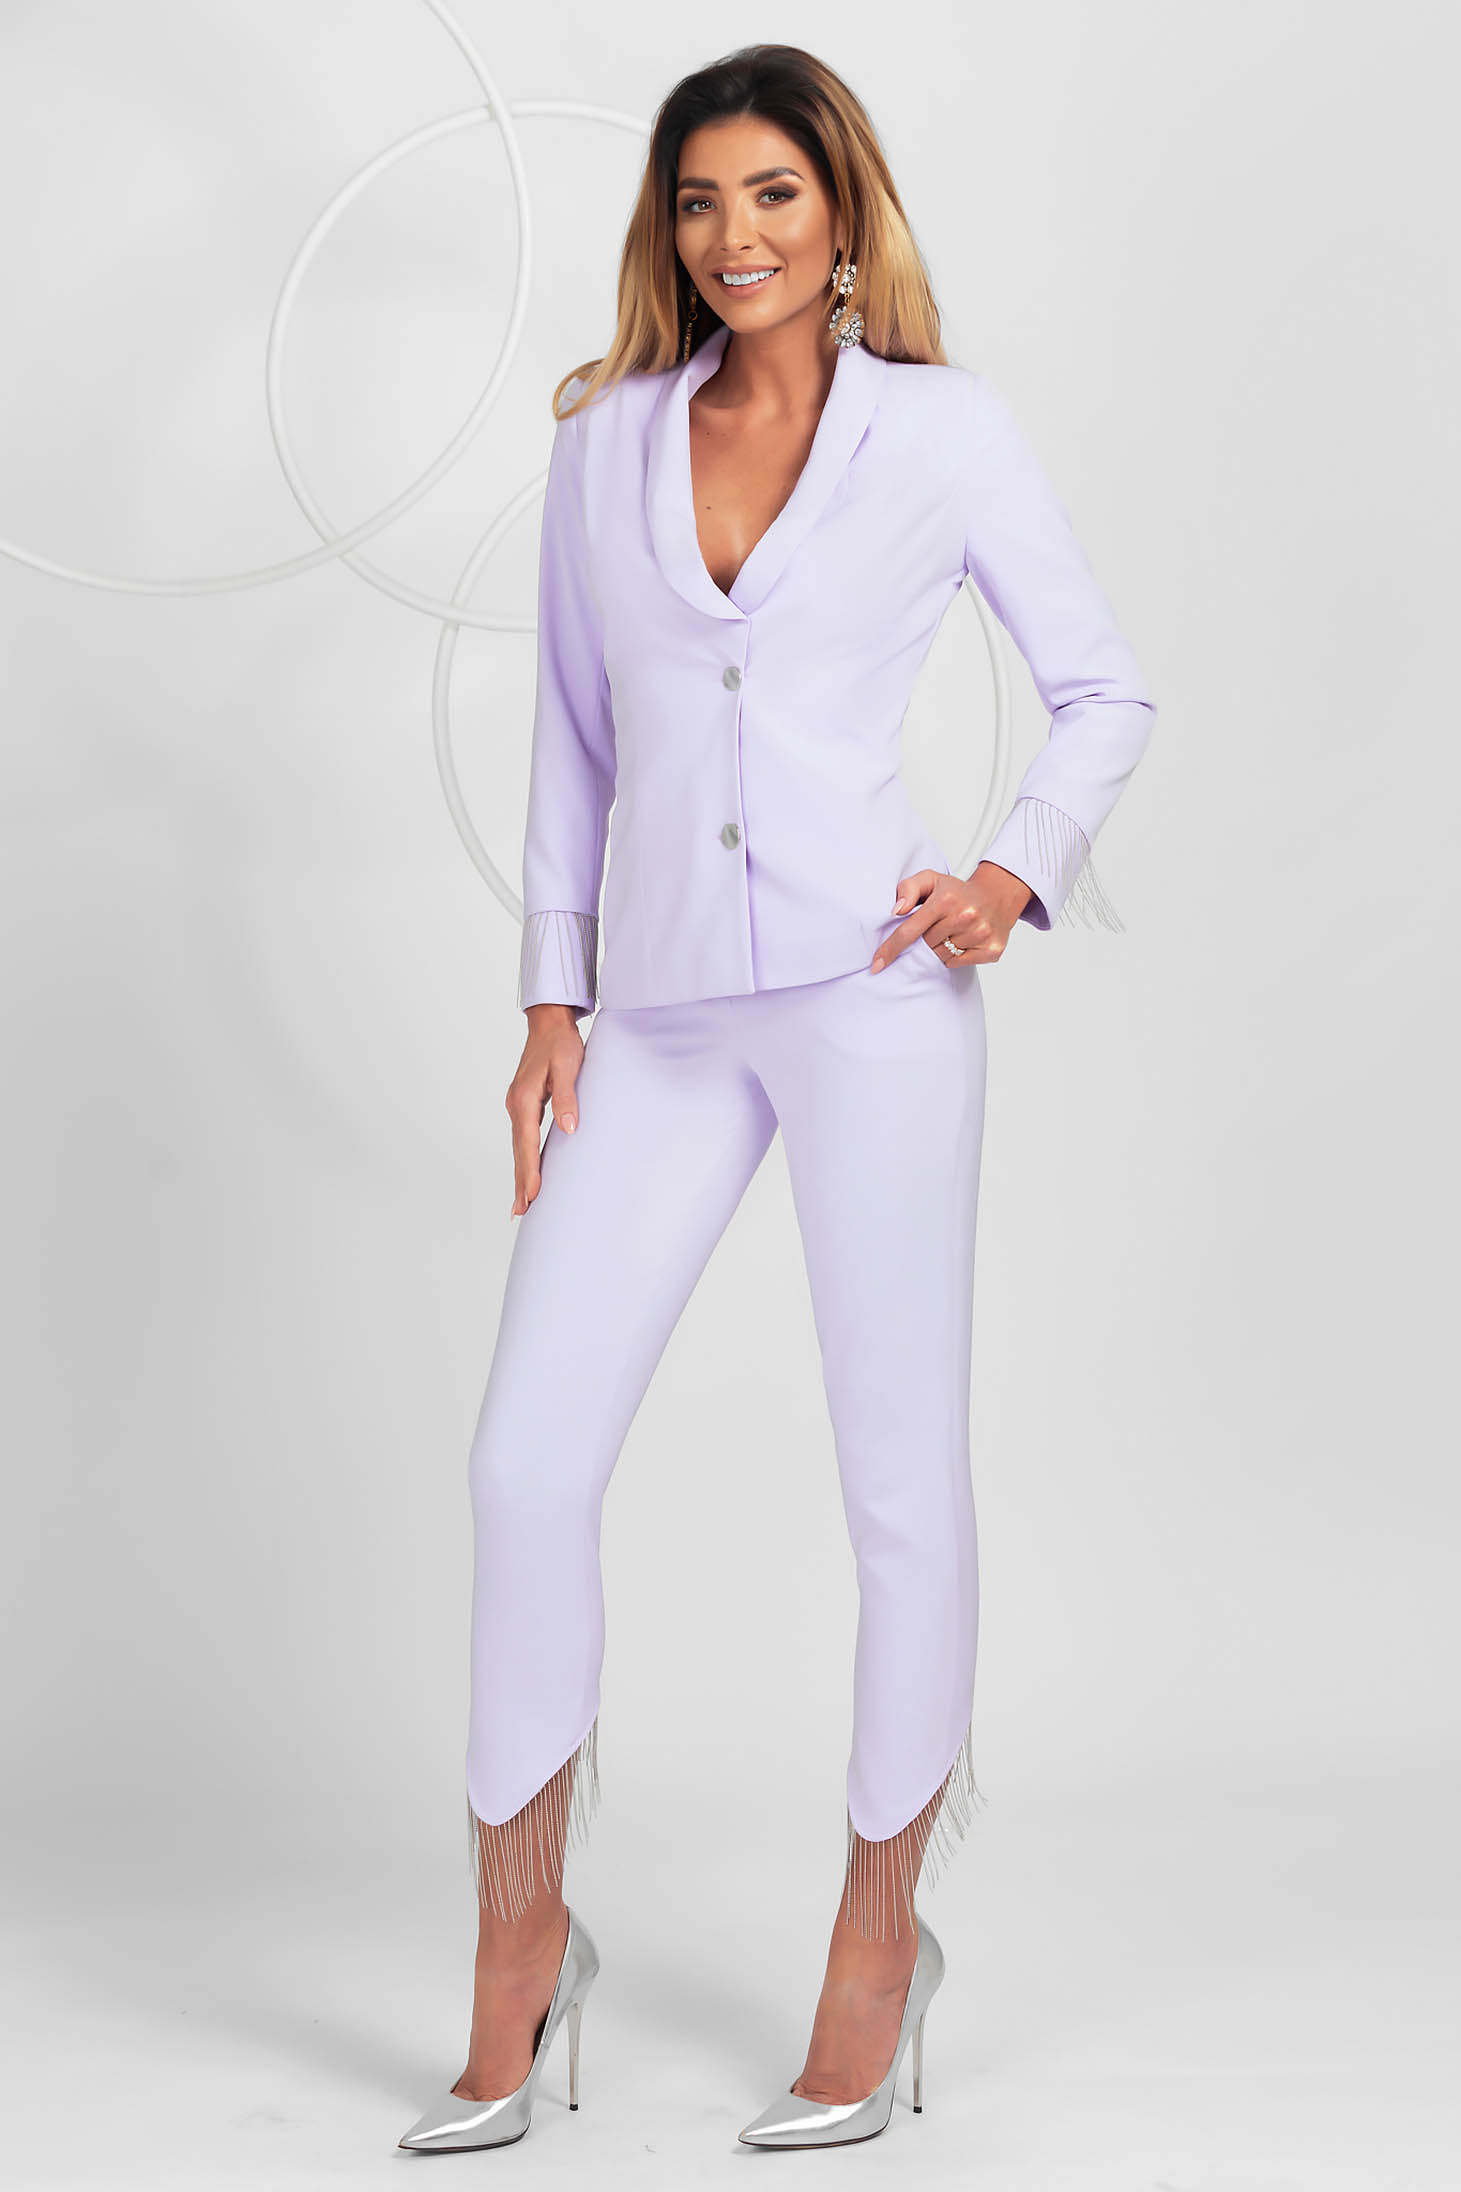 Lila trousers elegant conical medium waist with fringes at the bottom